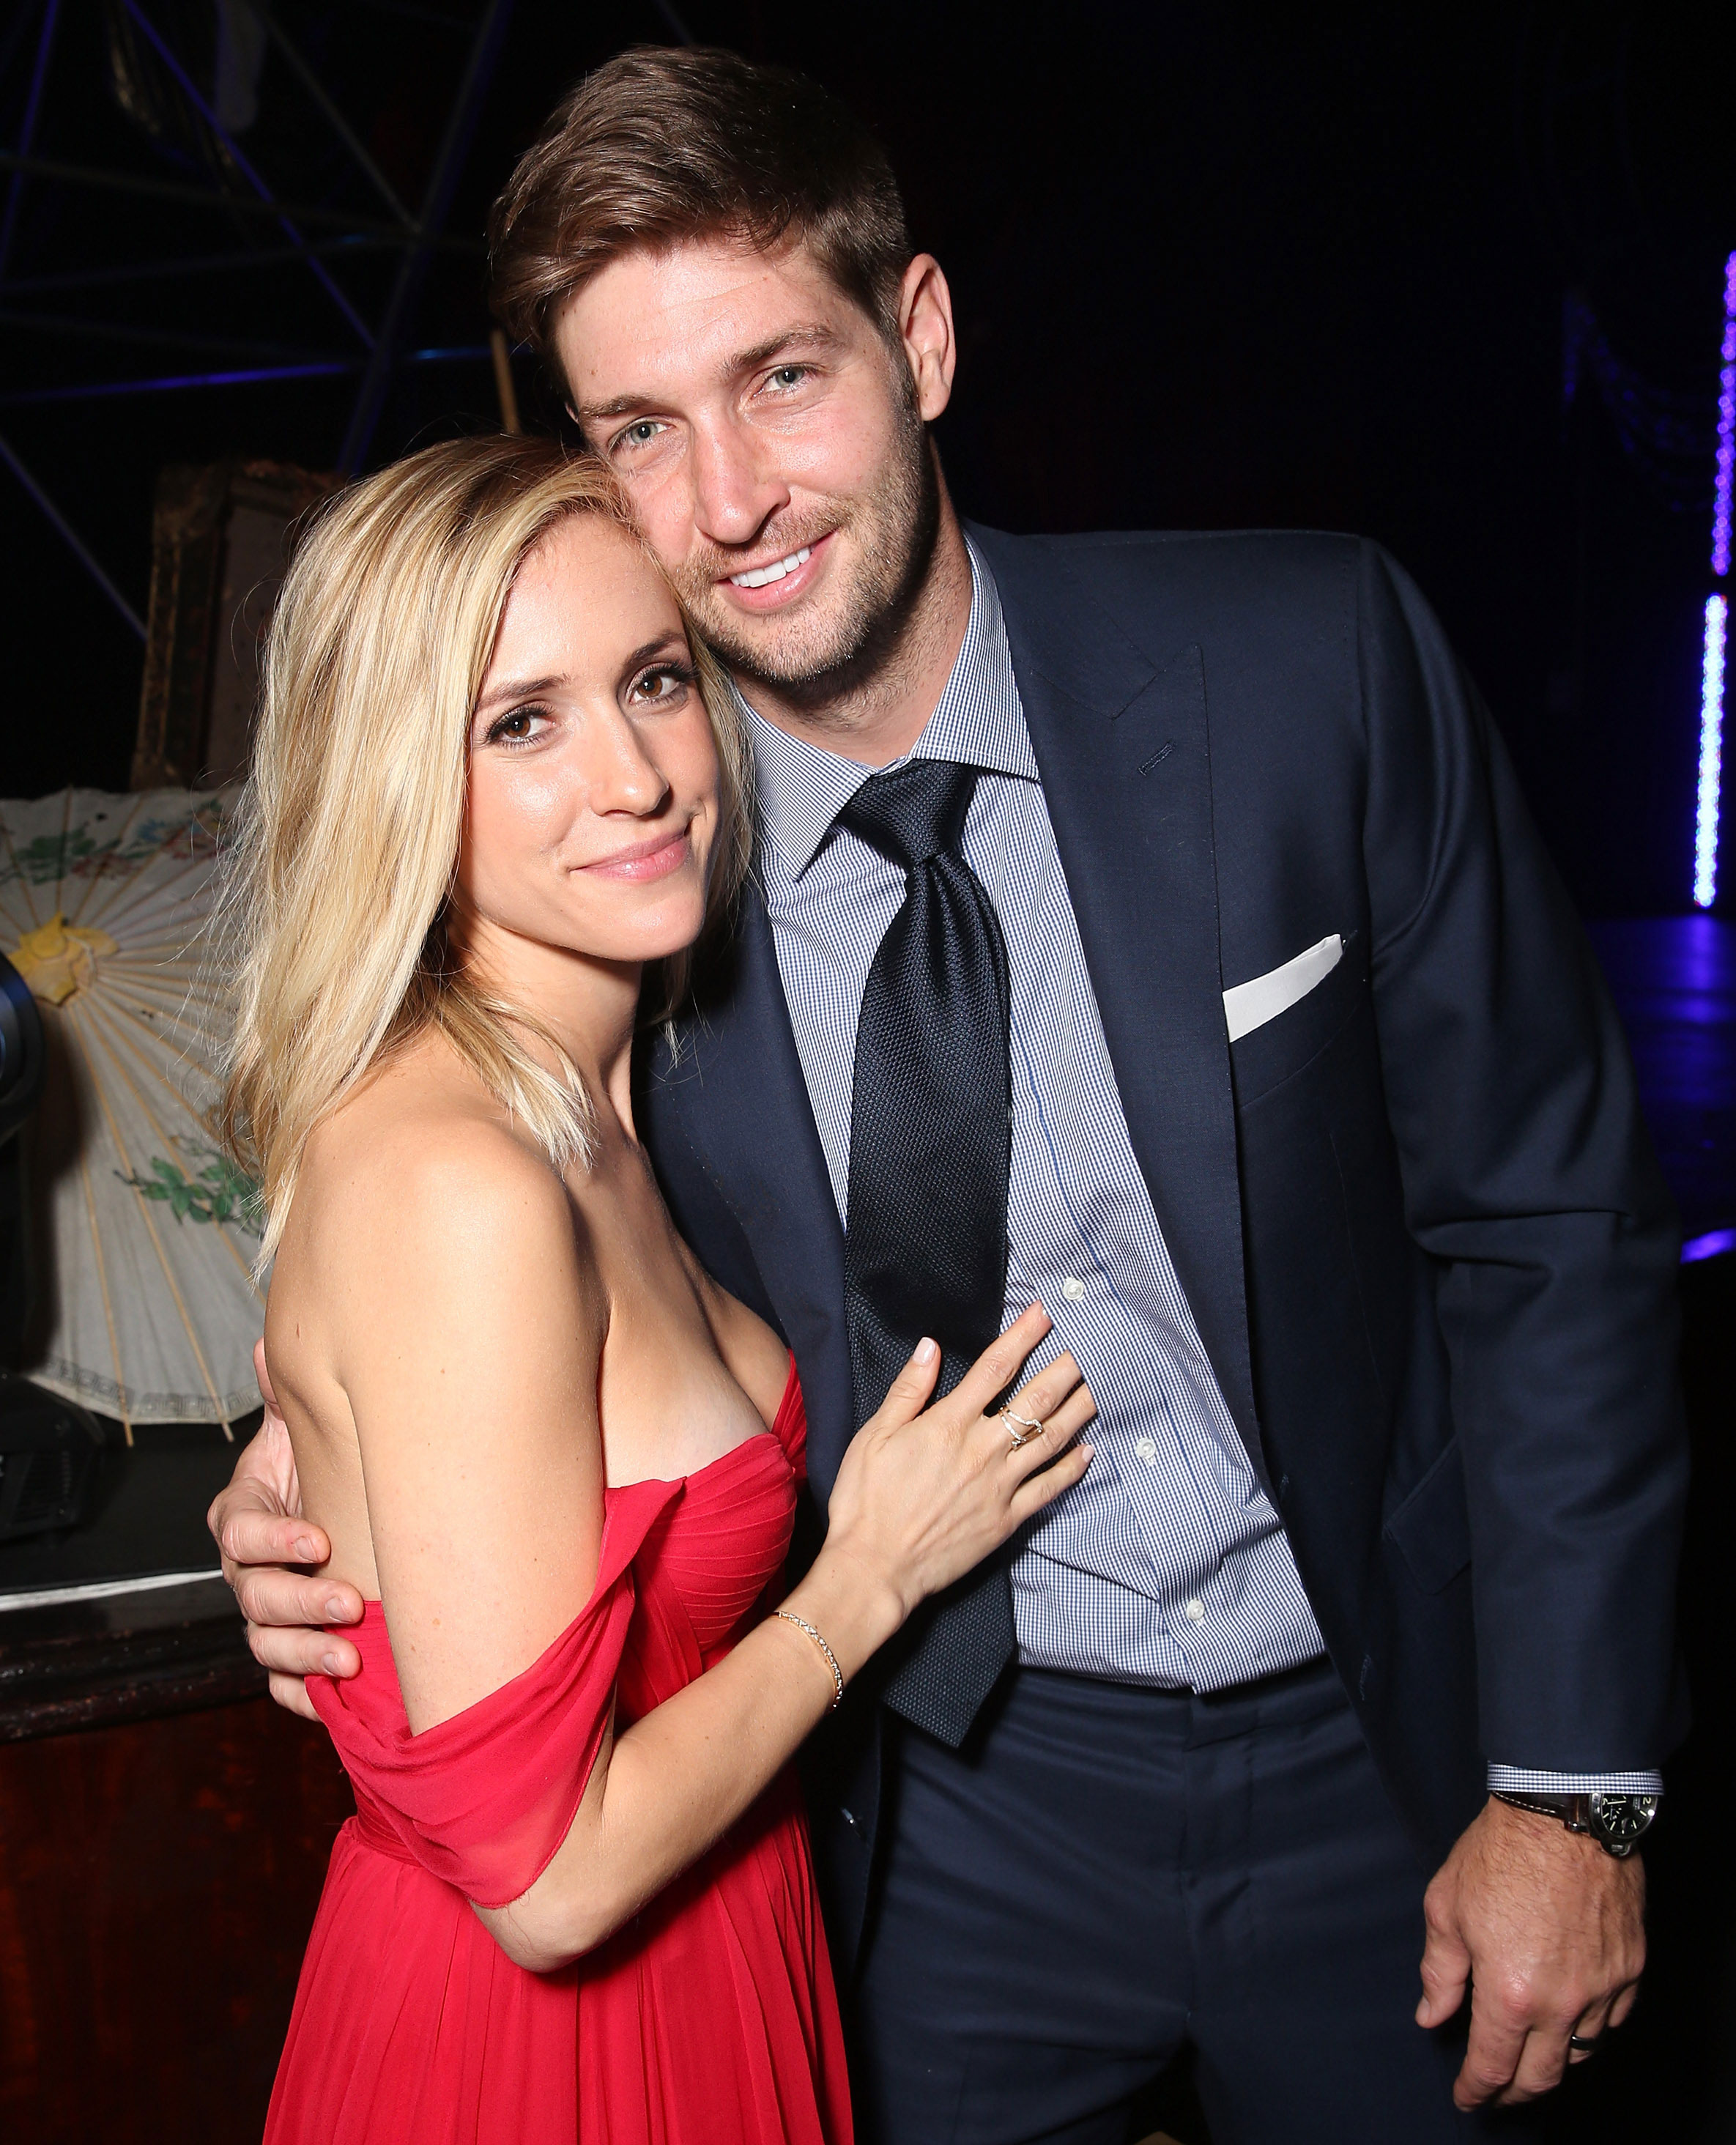 Kristin Cavallari and Jay Cutler's Ups and Downs Through the Years